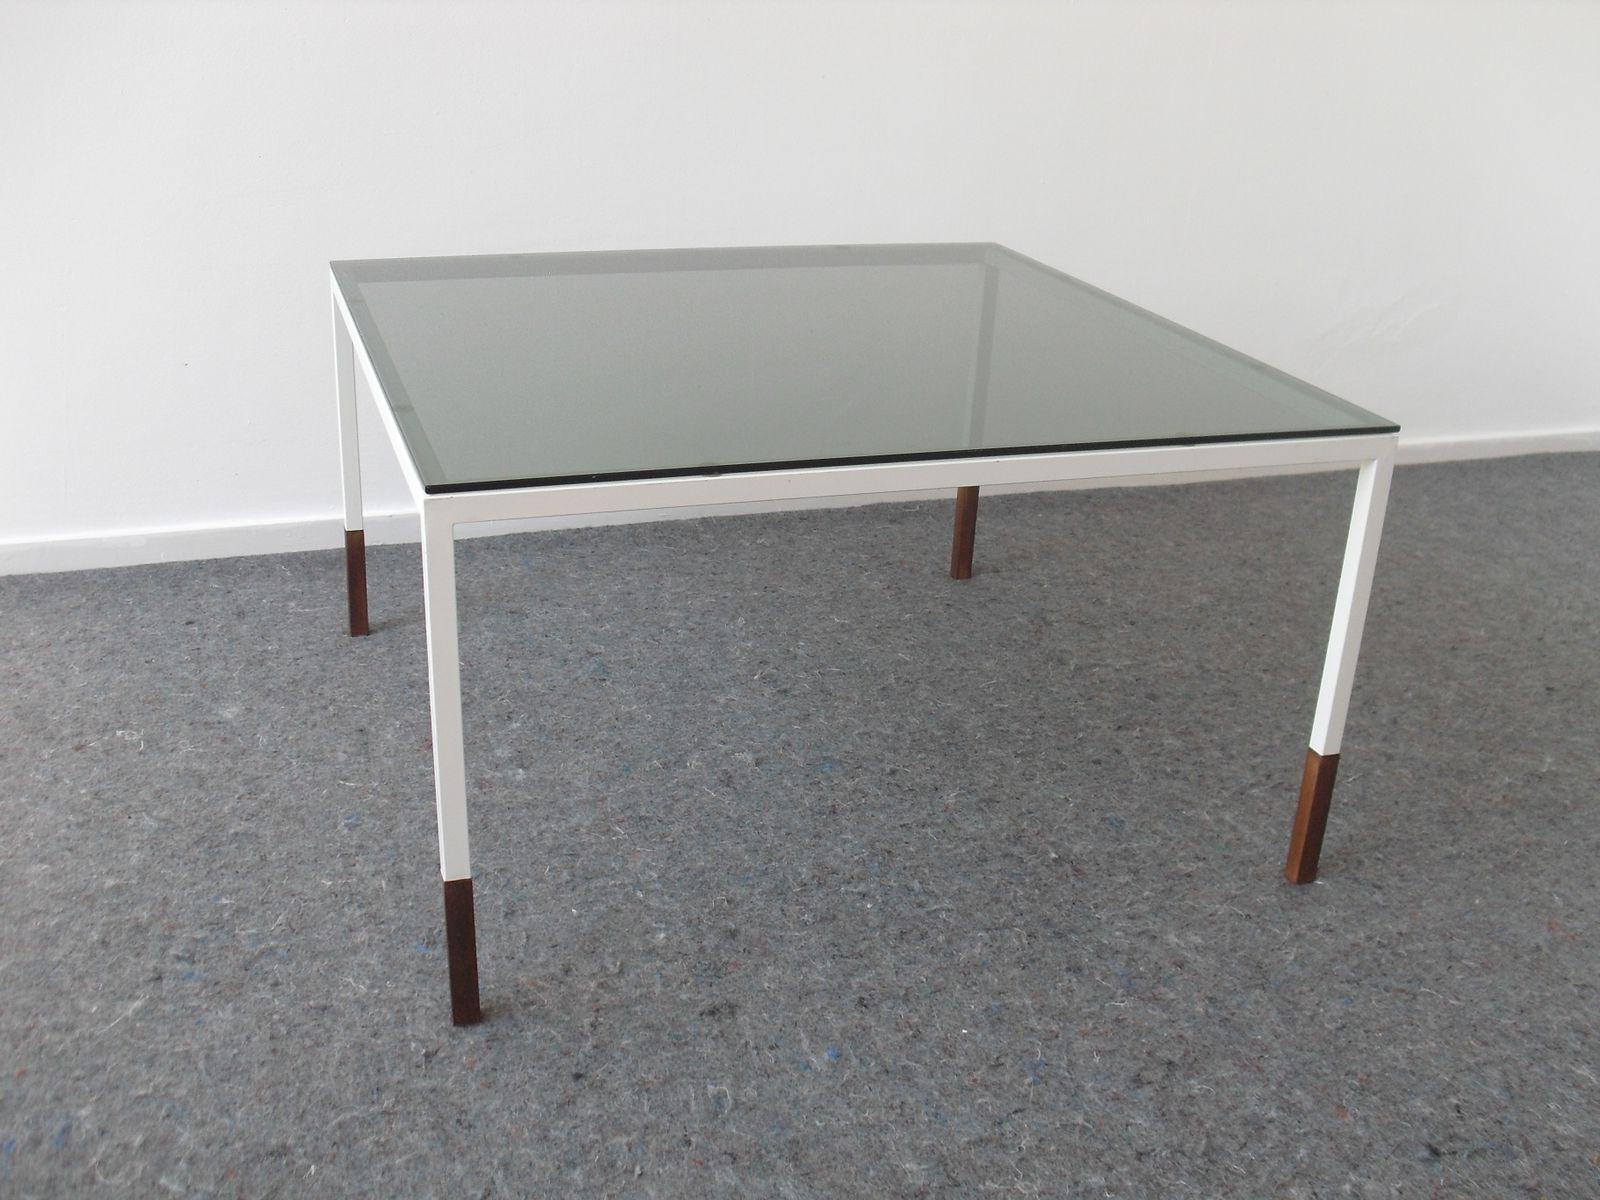 Minimalist Coffee Tables Within Fashionable Dutch Minimalist Coffee Table, 1960S For Sale At Pamono (Gallery 11 of 20)